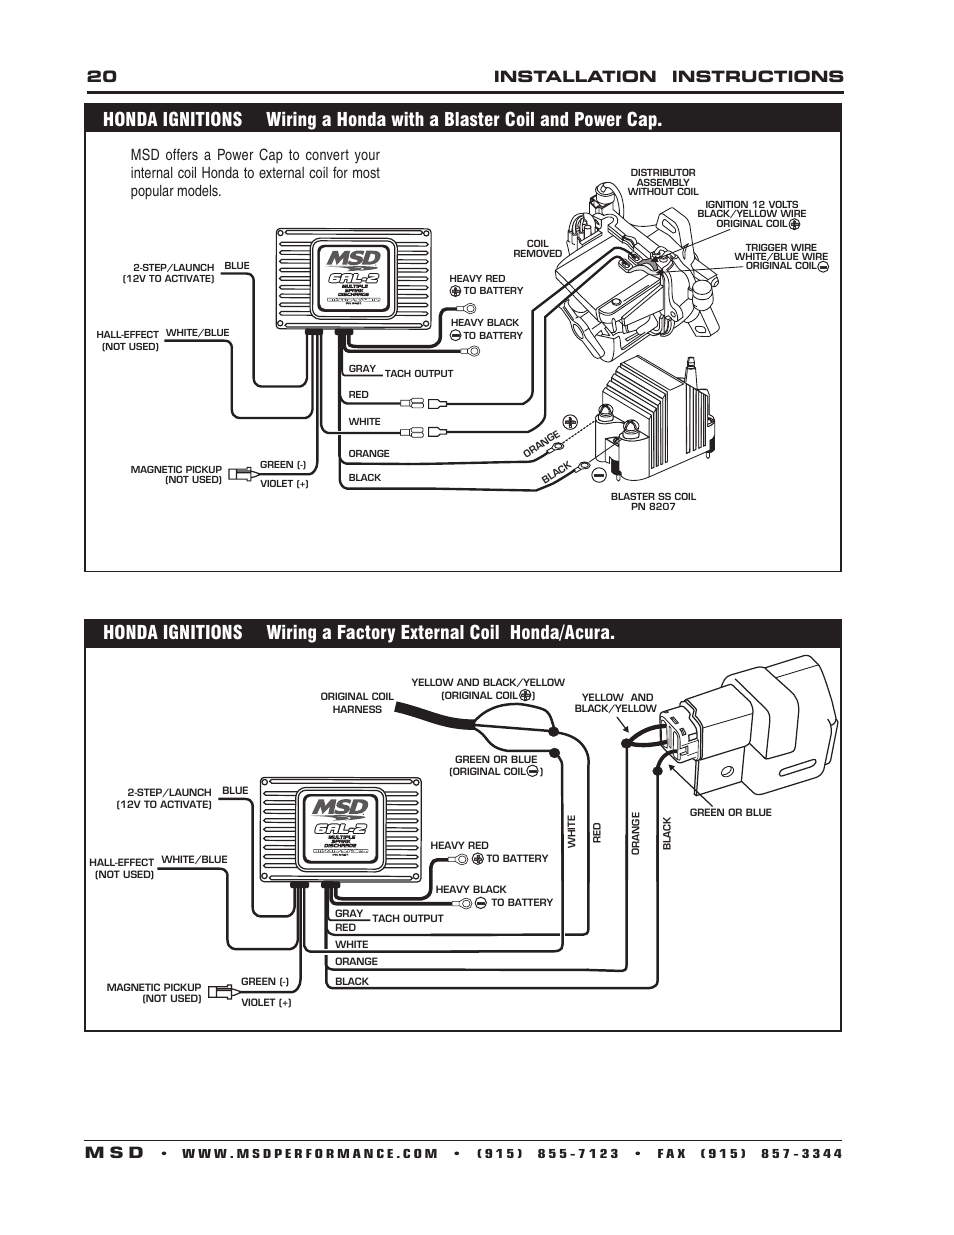 6421 Msd 6al 2 Wiring Diagram Electrical Diagrams Coil And Distributor Schematics Gm